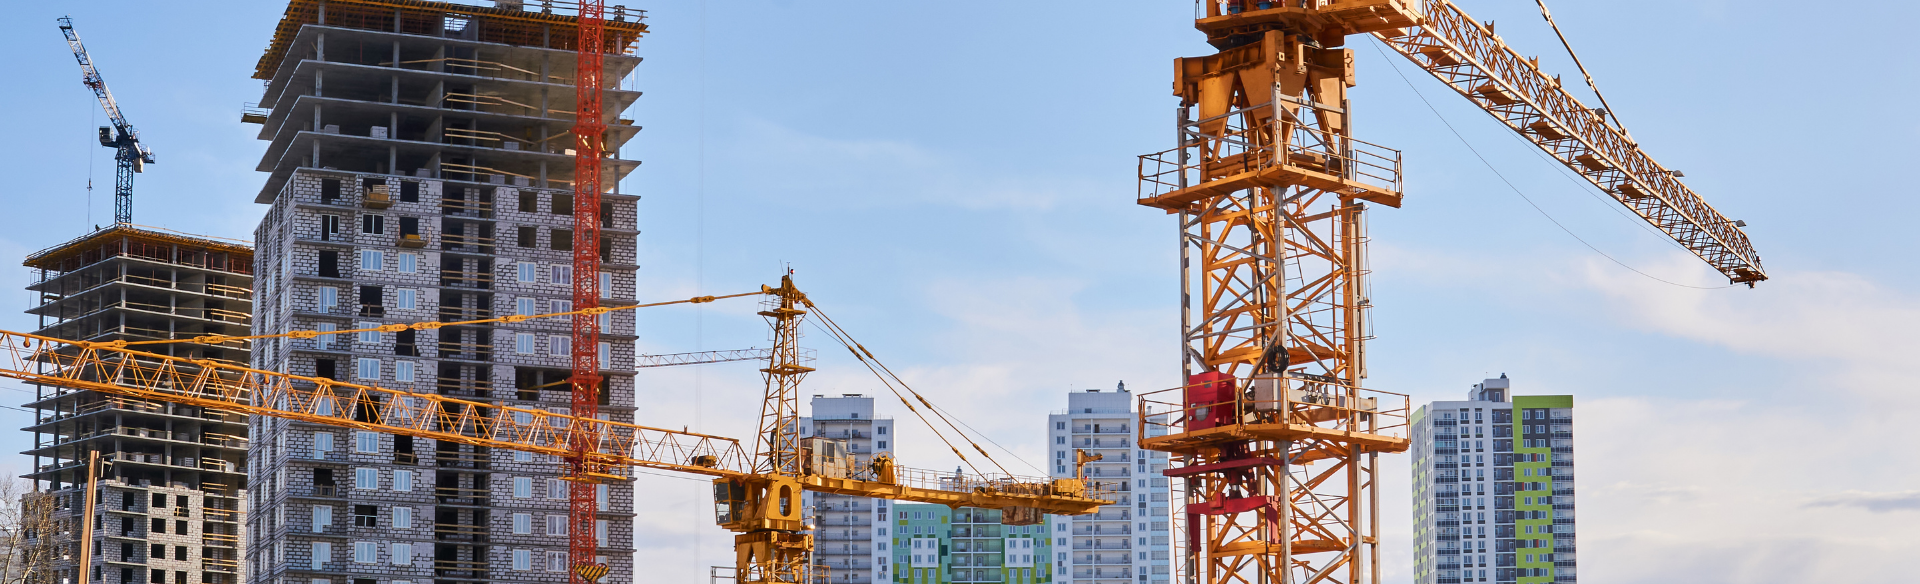 Benefits and Risks of Construction Wearables Part 2 featured image